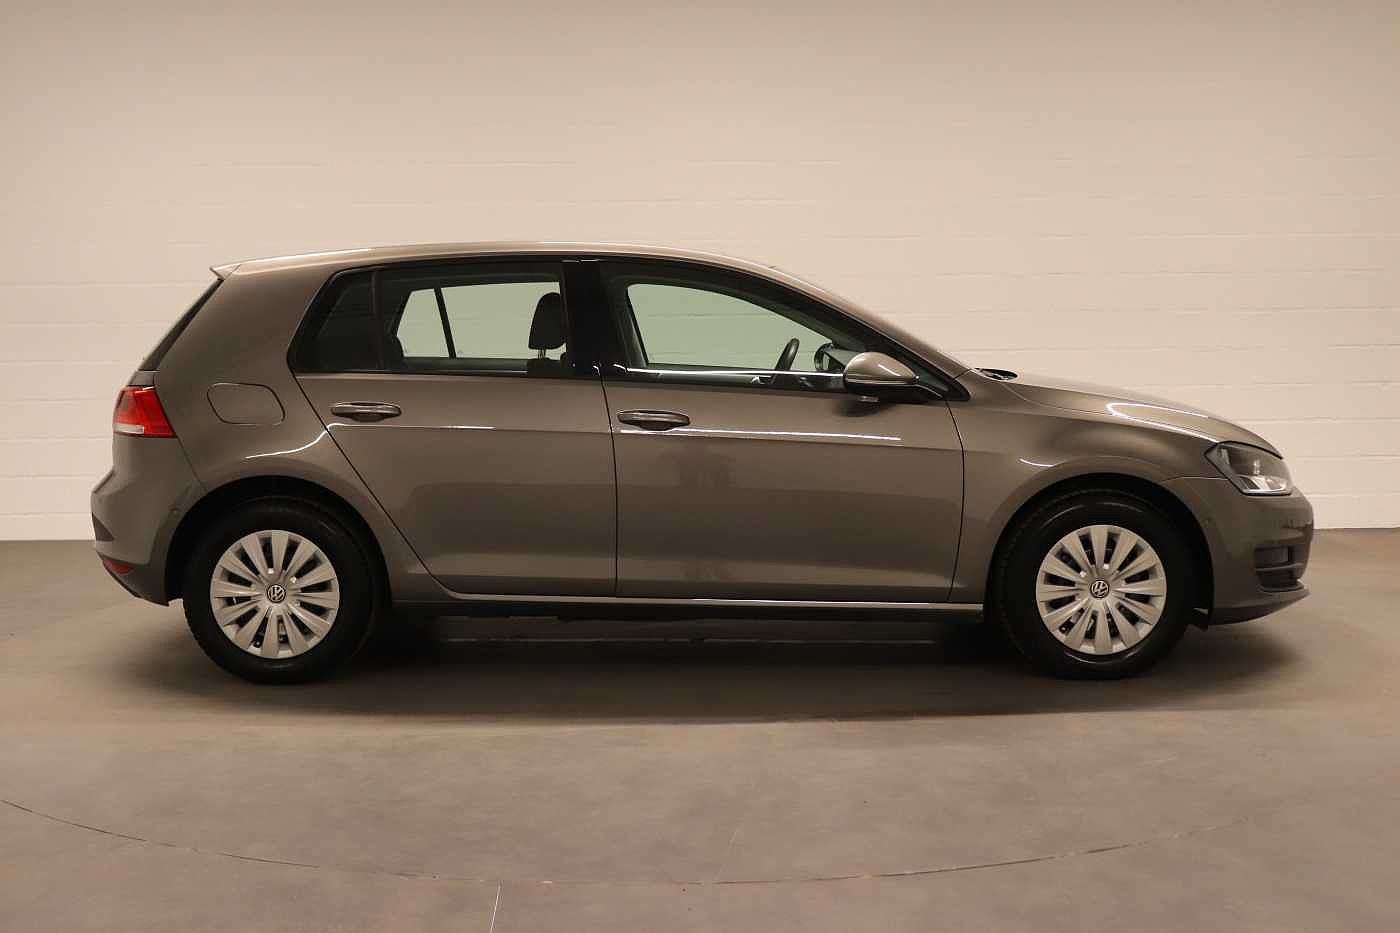 Volkswagen Golf 1.2TSI - photo 7